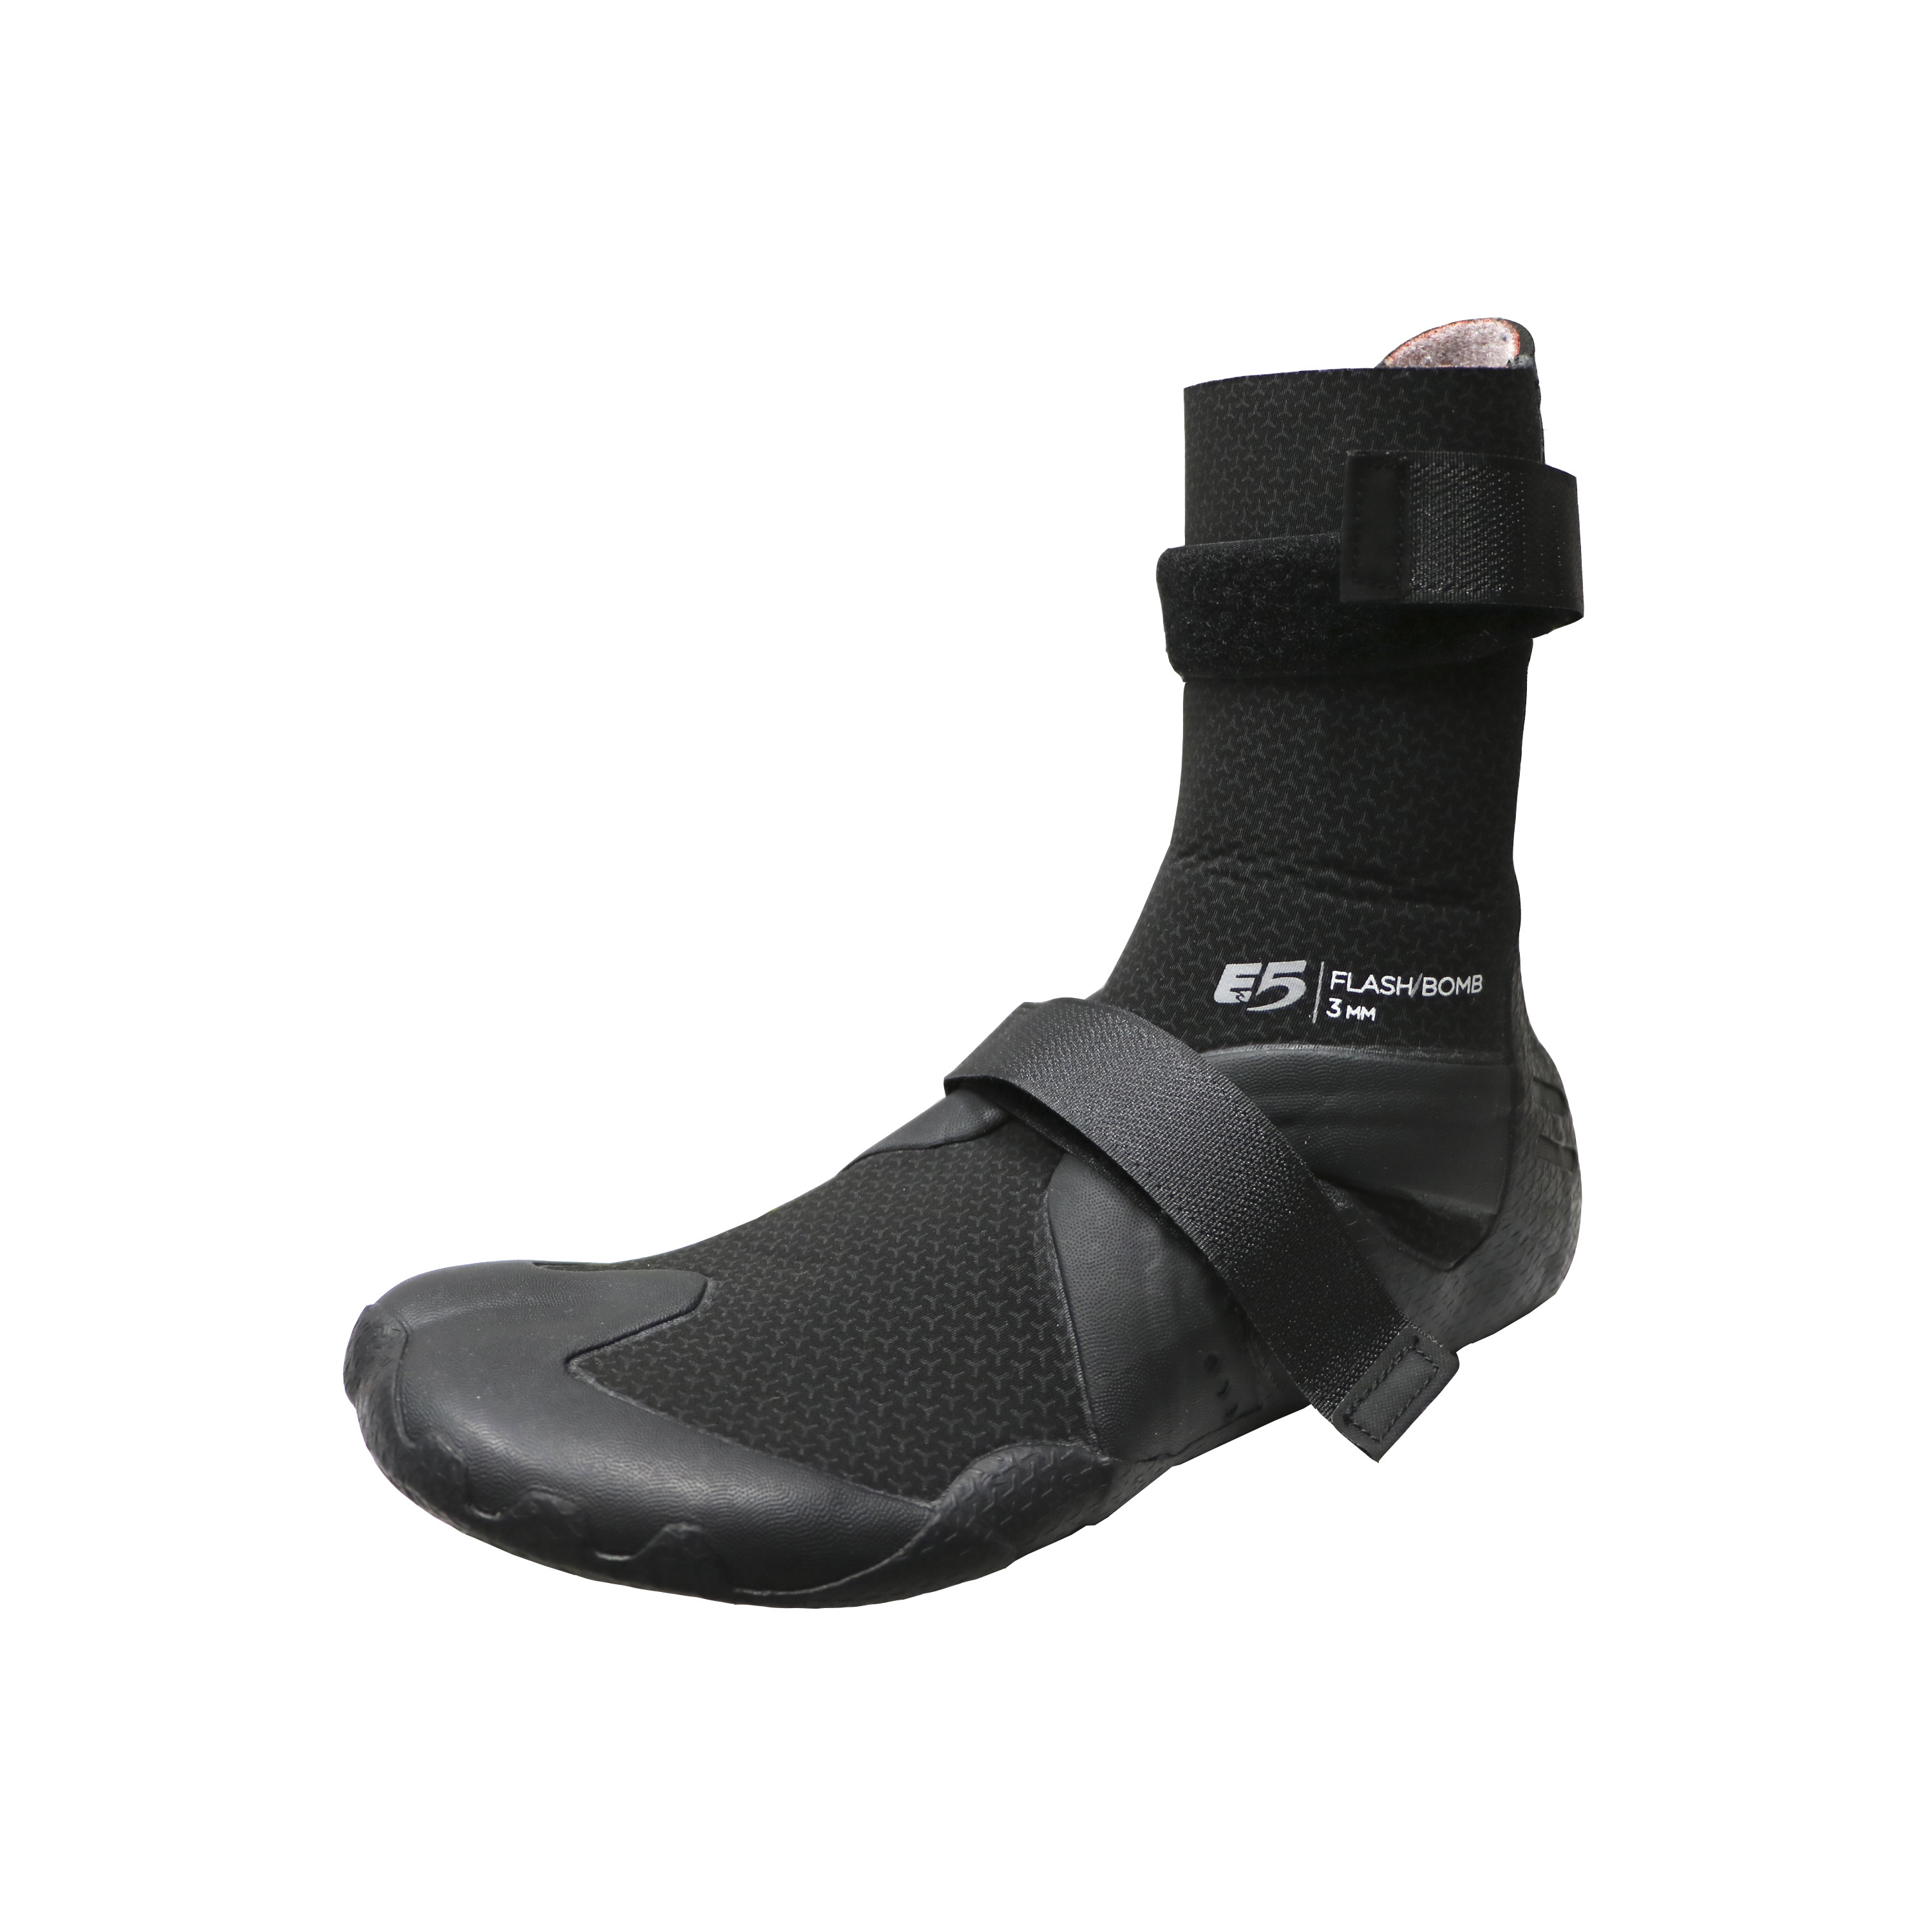 RIP CURL FLASHBOMB 3MM BOOTS